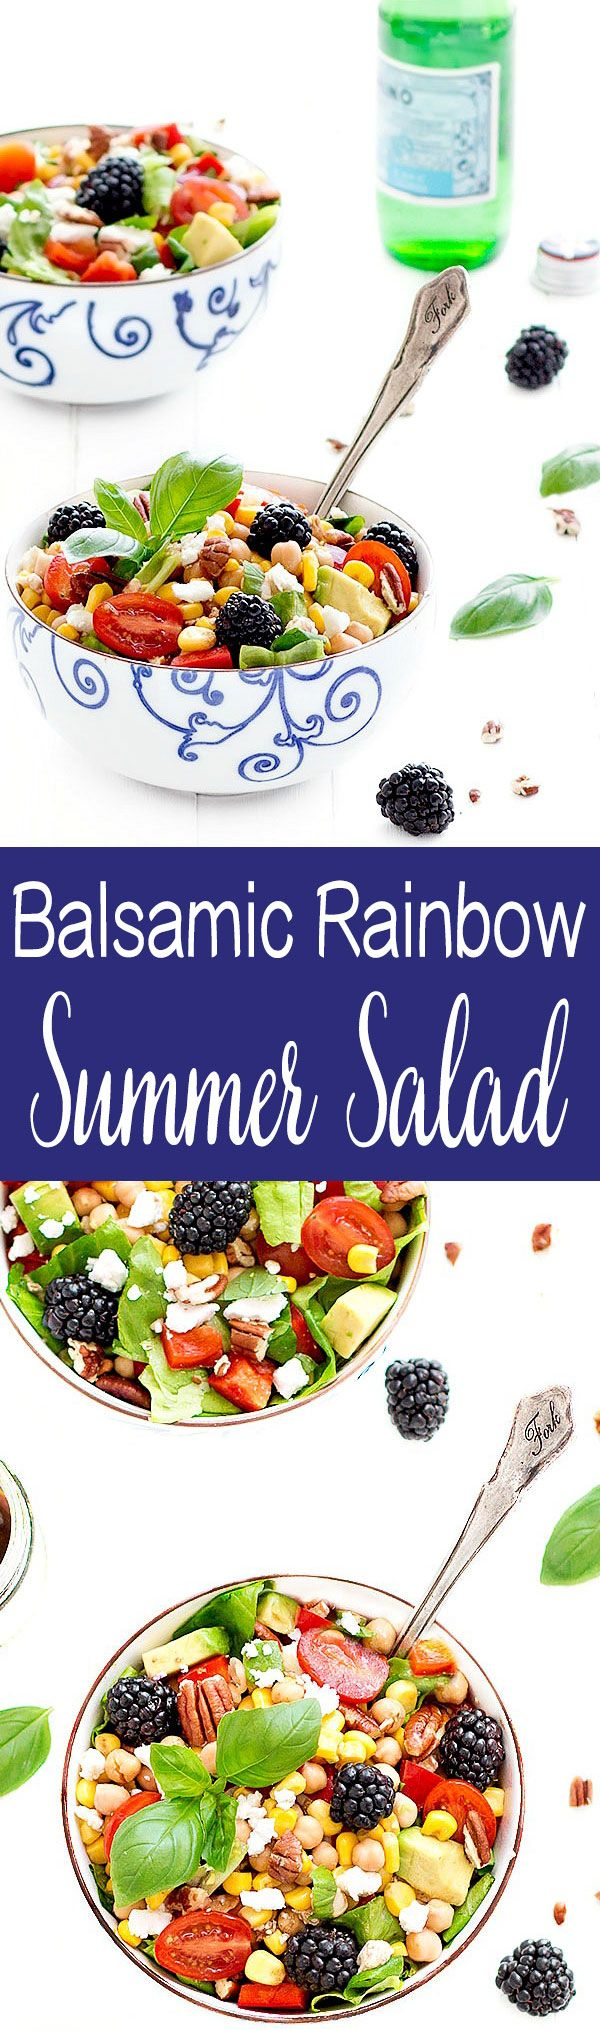 Balsamic rainbow summer salad  - fresh, easy, colorful, healthy, crunchy, tart, sweet, and savory. It tastes like summer in a bowl